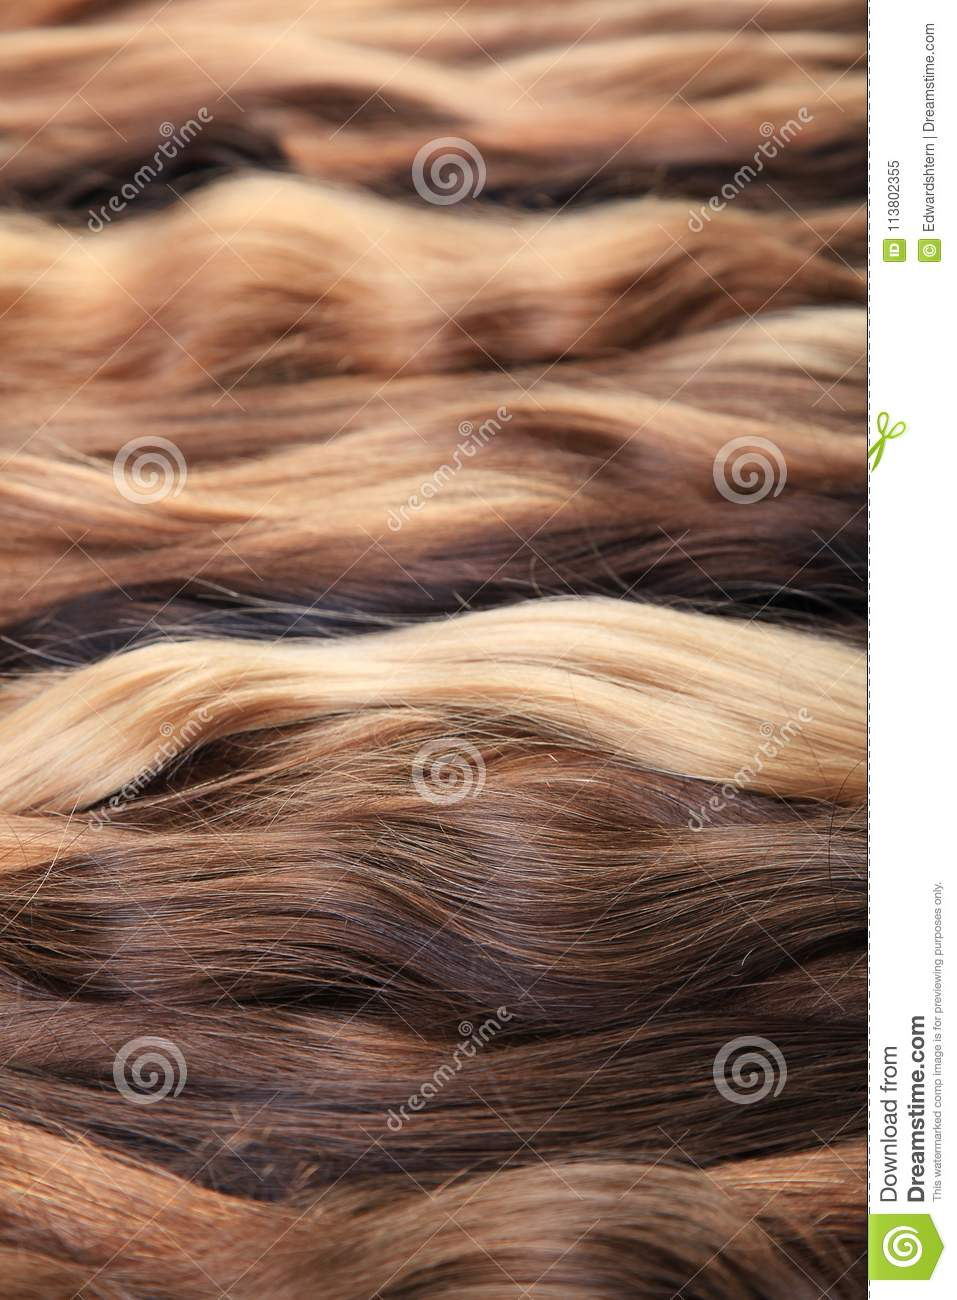 Hair Extension Equipment Of Natural Hair. Hair Samples Of Differ ...